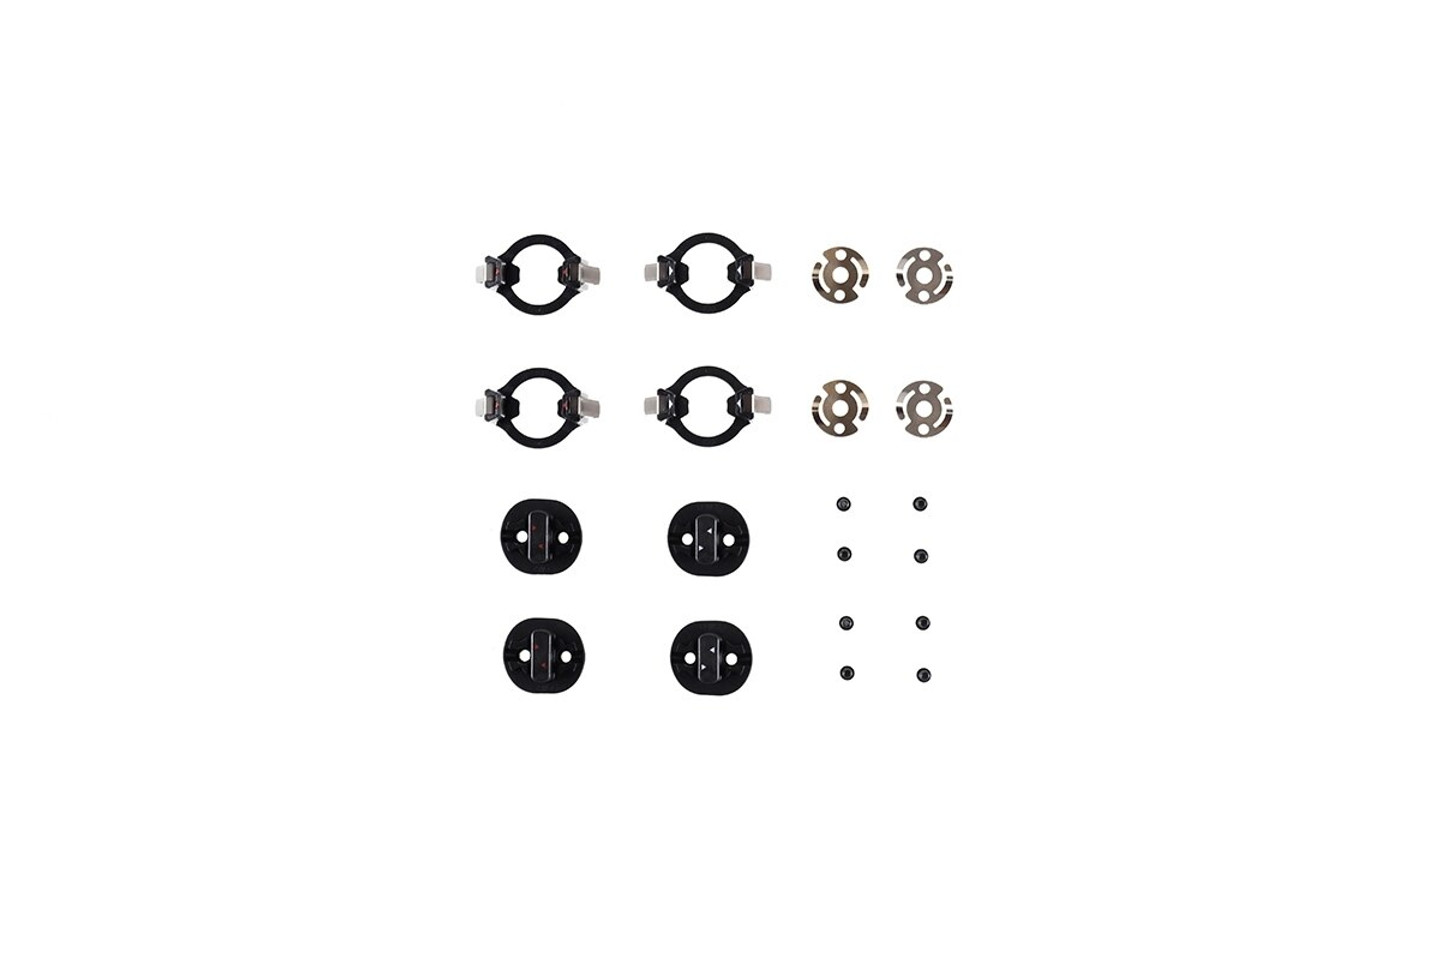 Inspire 2 - 1550T Quick Release Propeller Mounting Plates